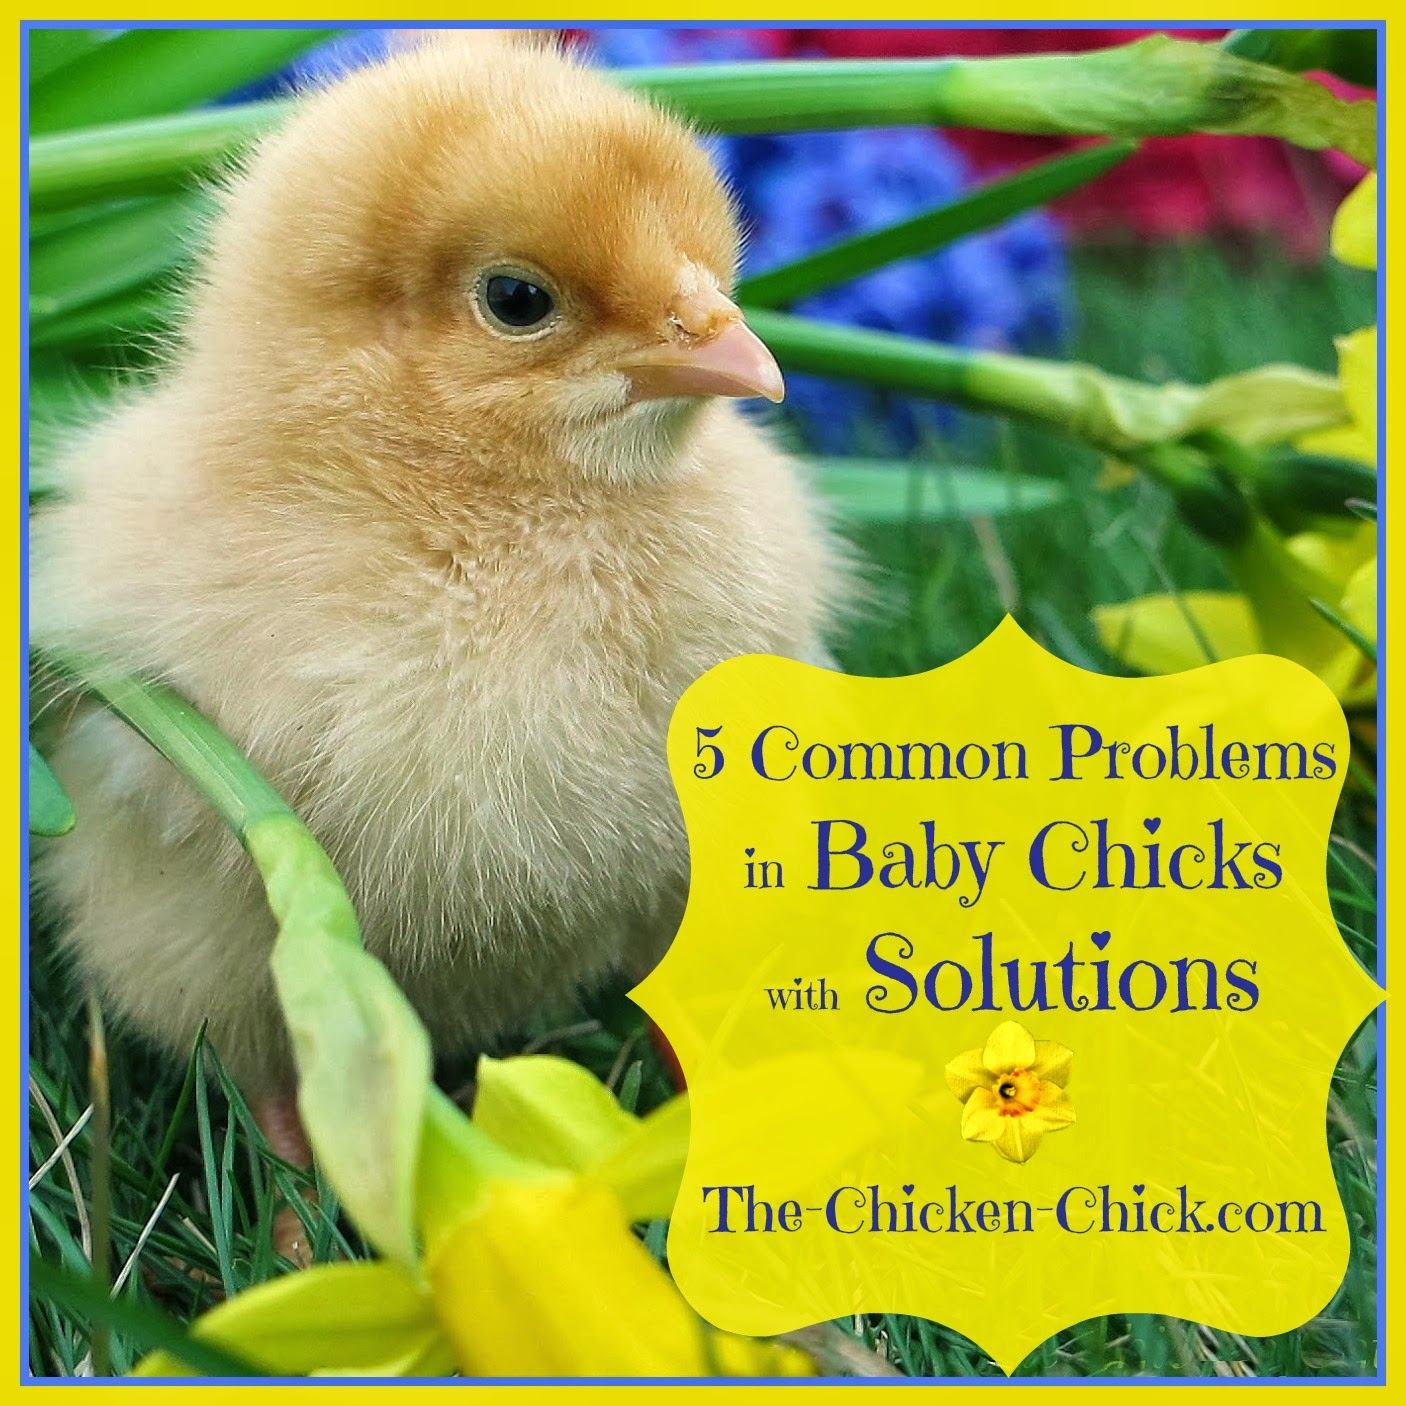 The Chicken Chick®: 5 Common Problems in Baby Chicks with Solutions